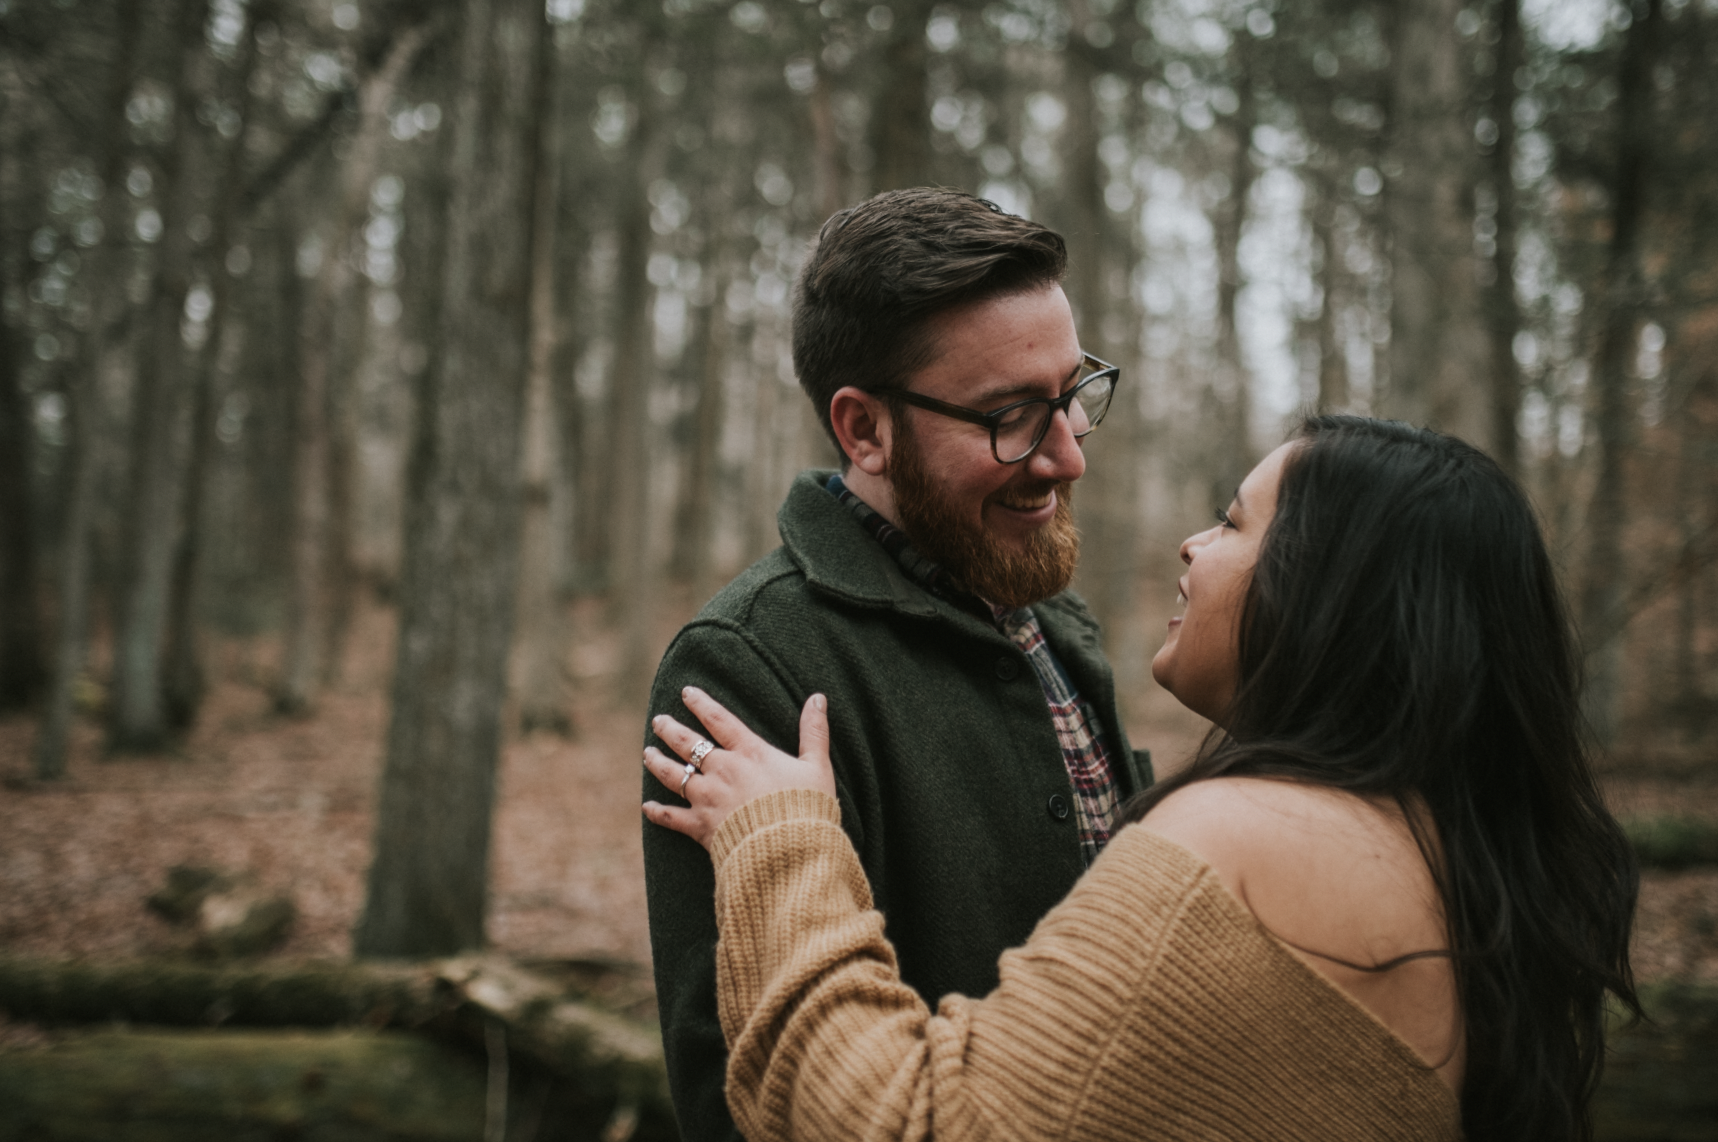 matt-natalia-winter-woods-engagement-session-pennsylvania-wedding-photographer-18